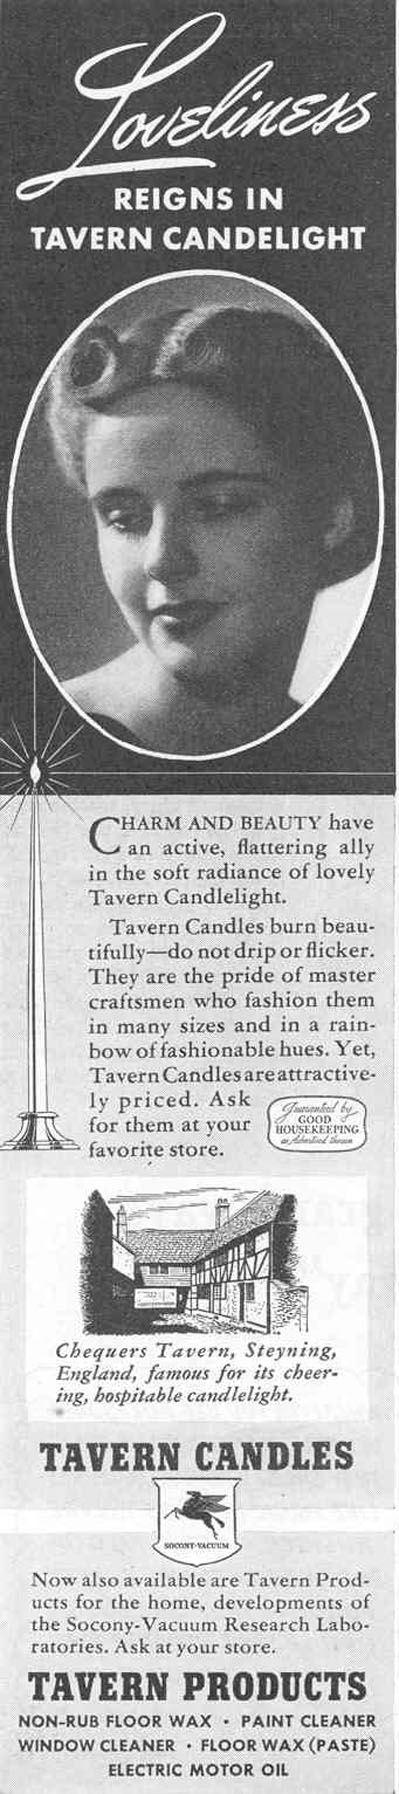 TAVERN CANDLES GOOD HOUSEKEEPING 03/01/1940 p. 68